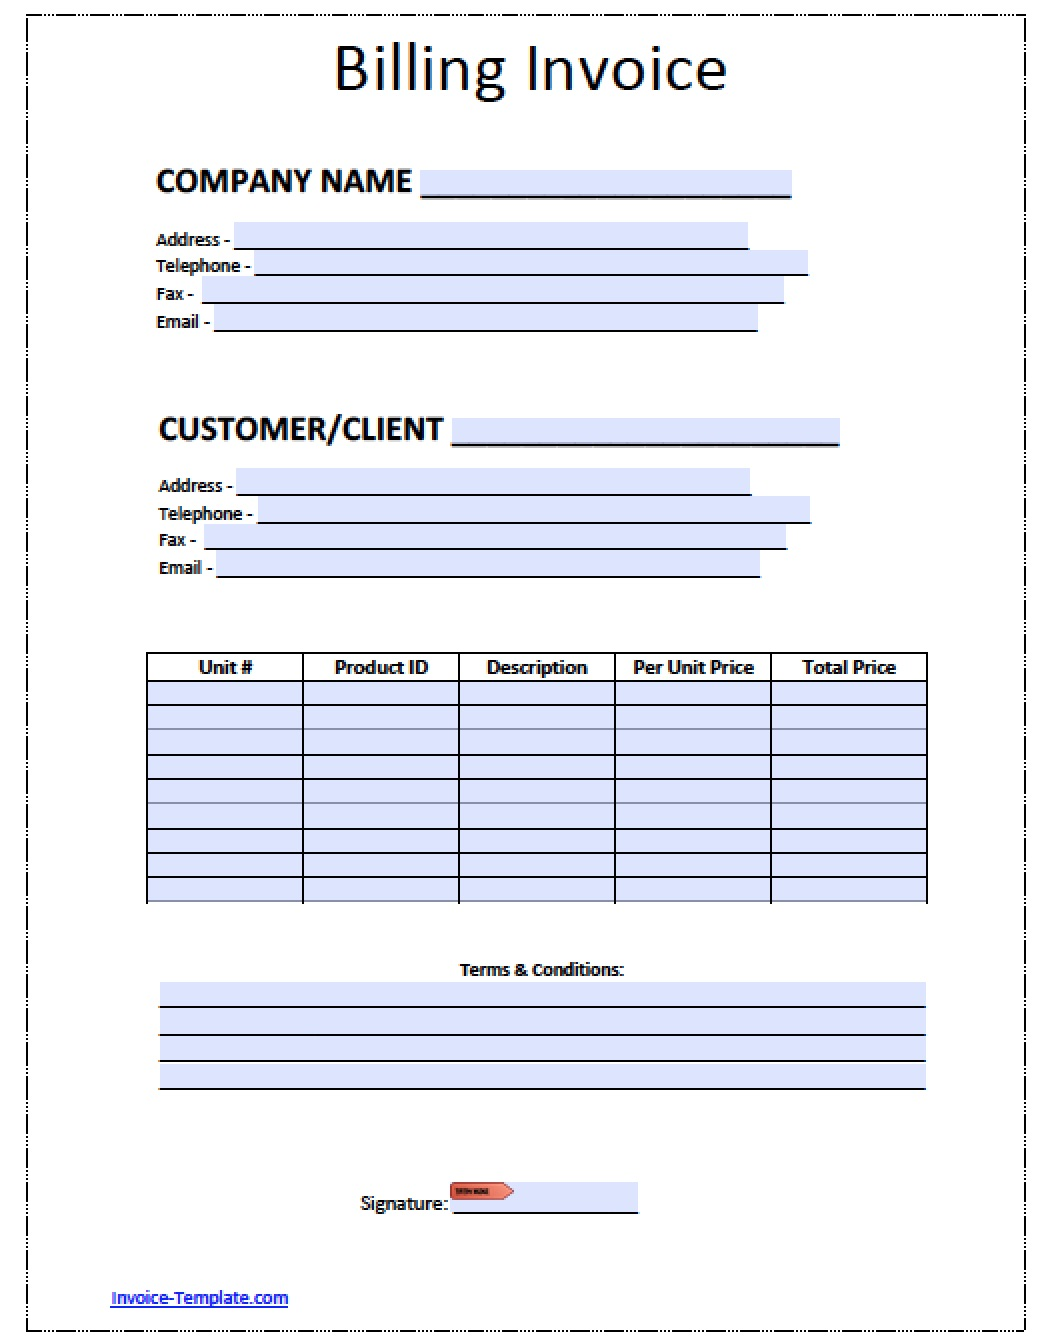 Billing Invoice Template Word Pdf  Picture Template For Word